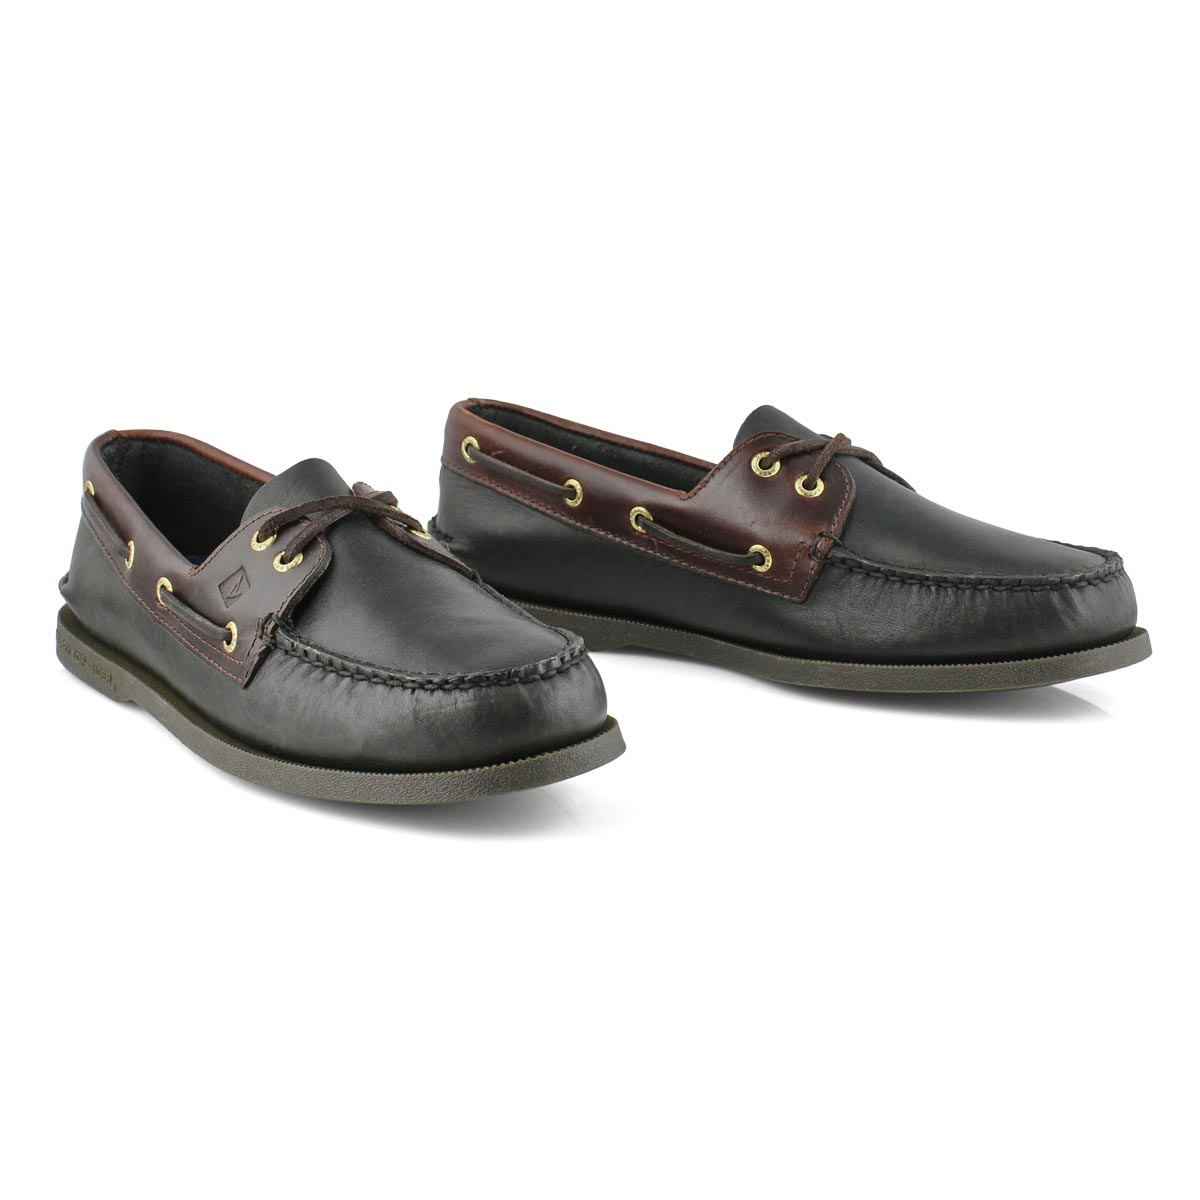 Mns A/O 2-eye black/amaretto boat shoe